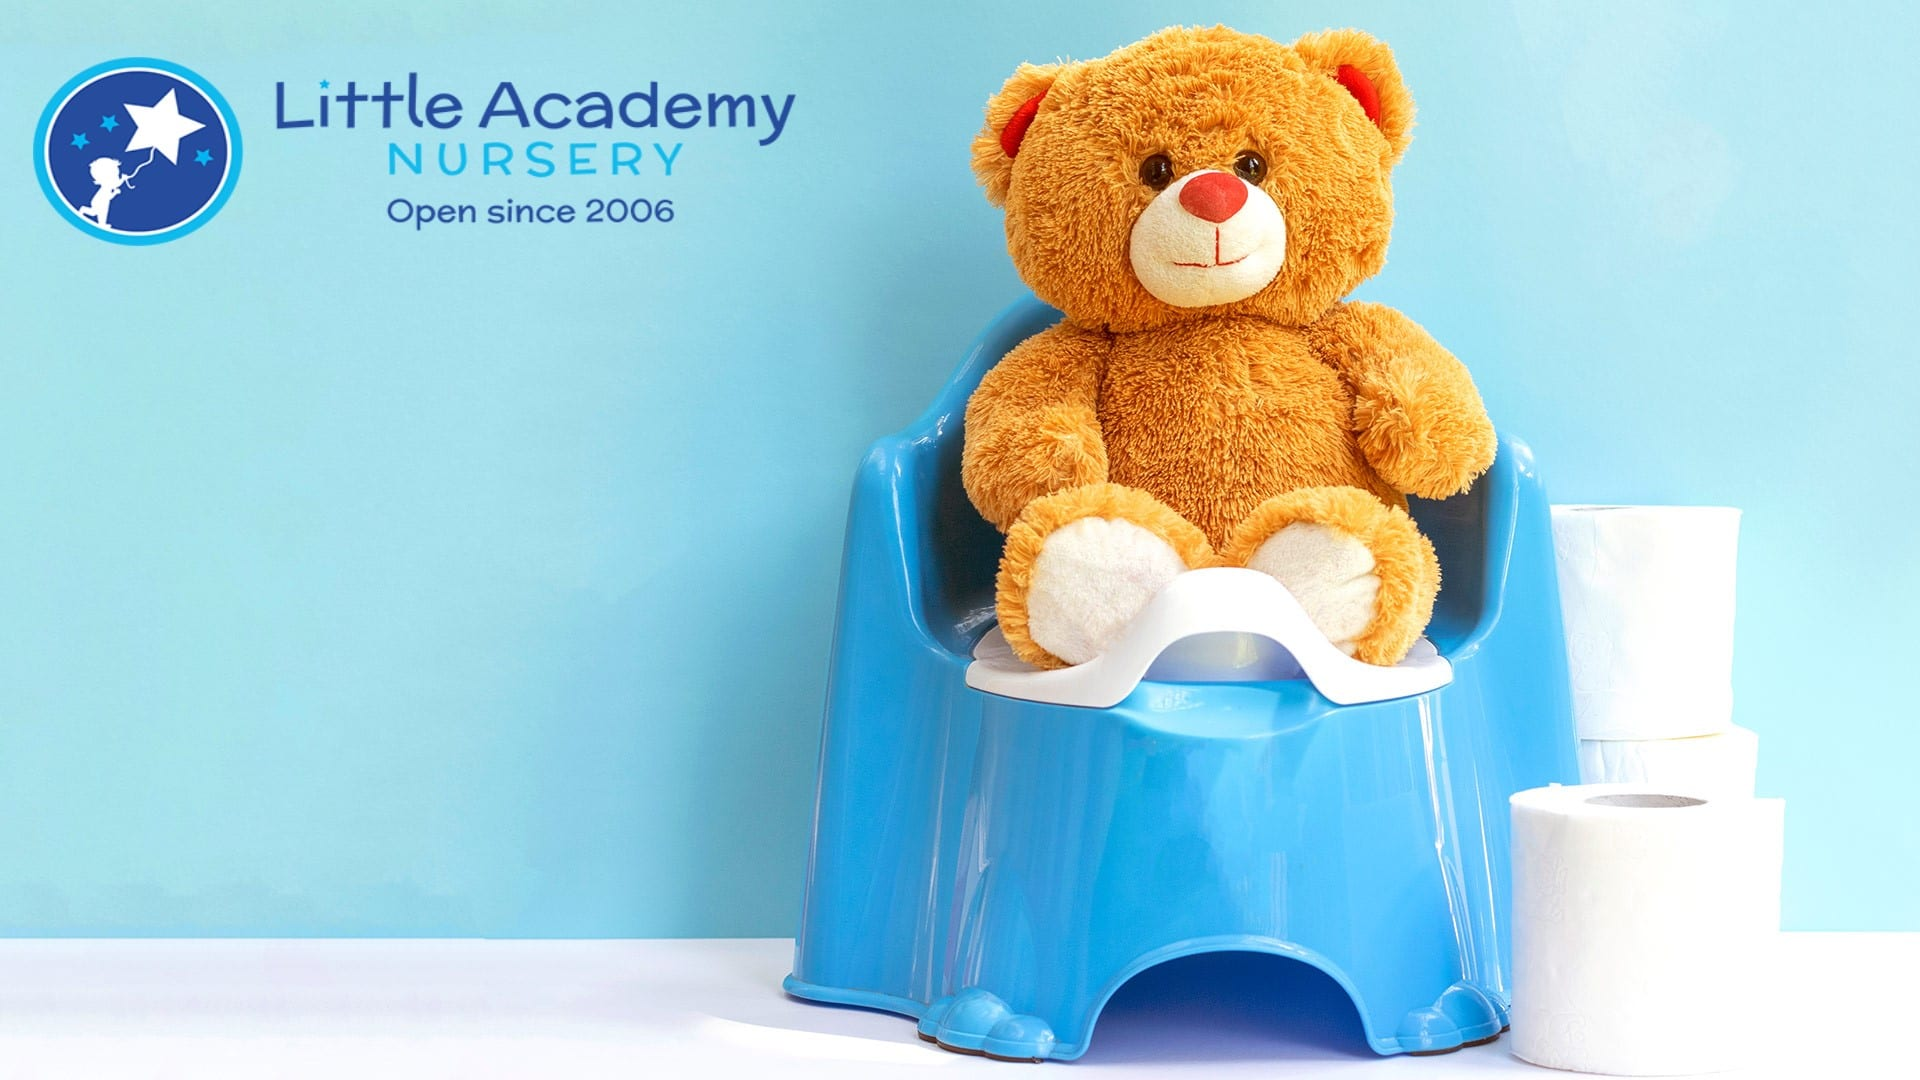 A small brown color teddy bear is sitting on a blue pot.